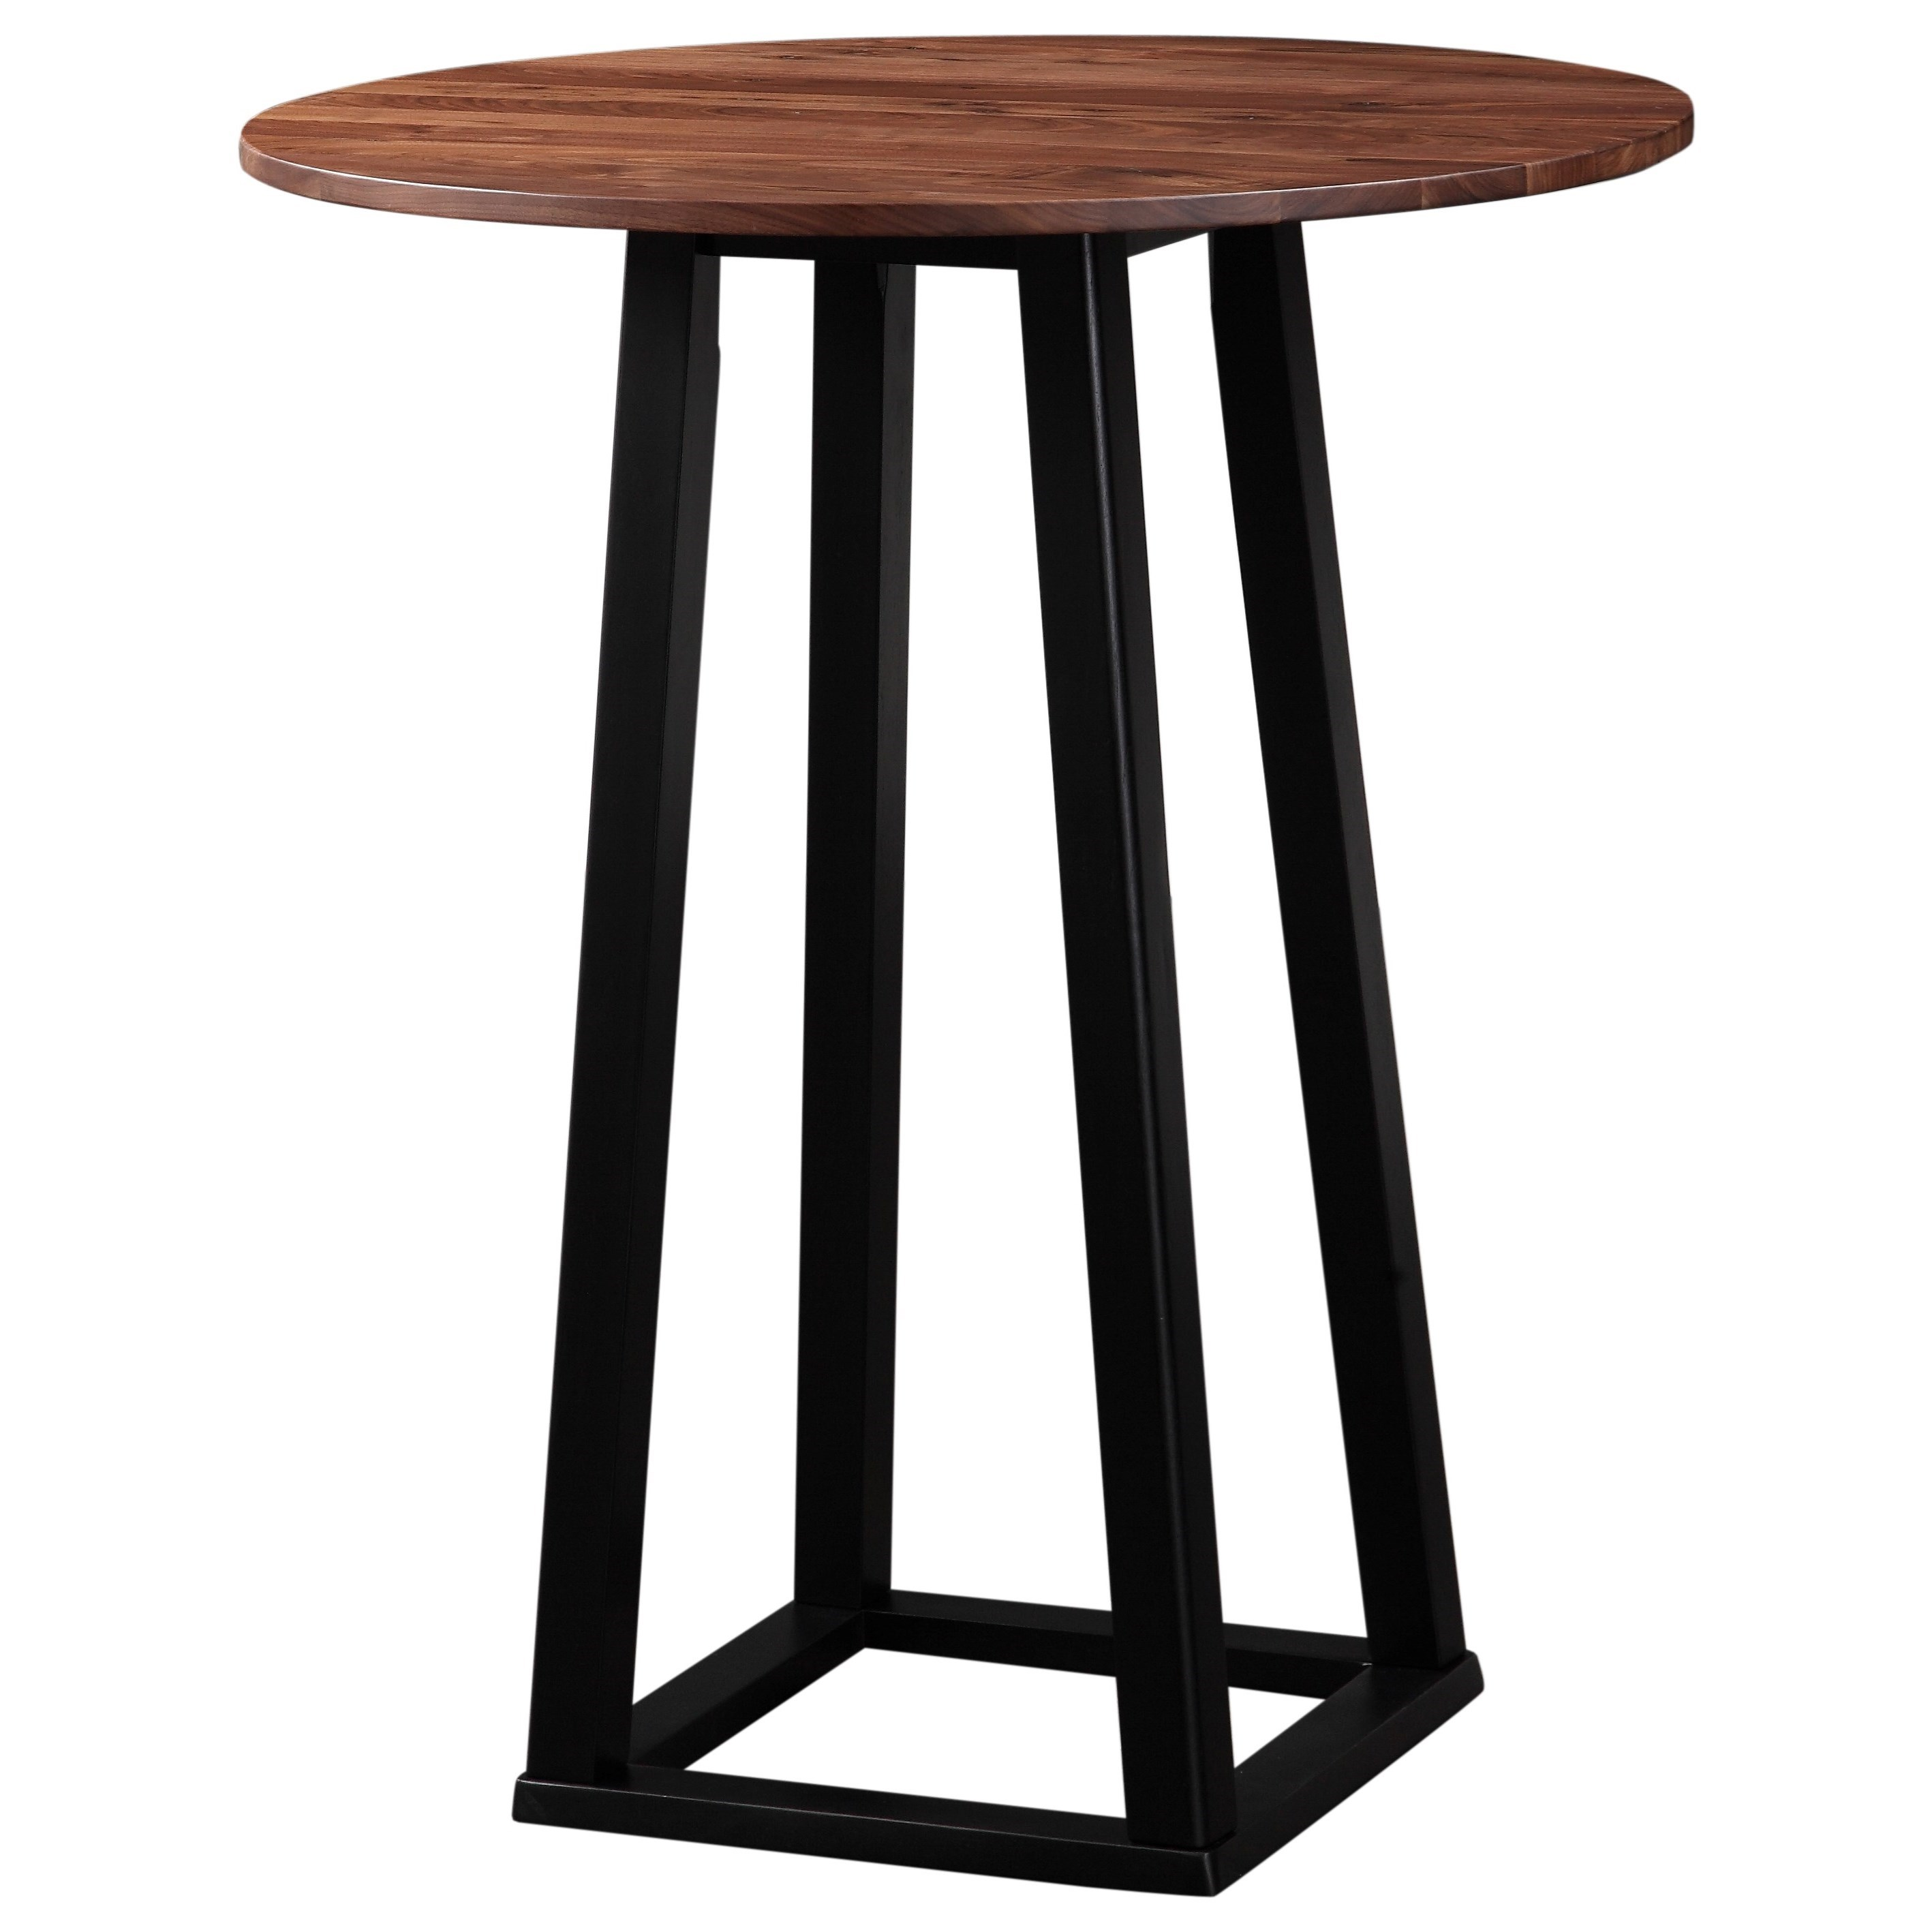 Tri-Mesa Bar Table by Moe's Home Collection at Stoney Creek Furniture